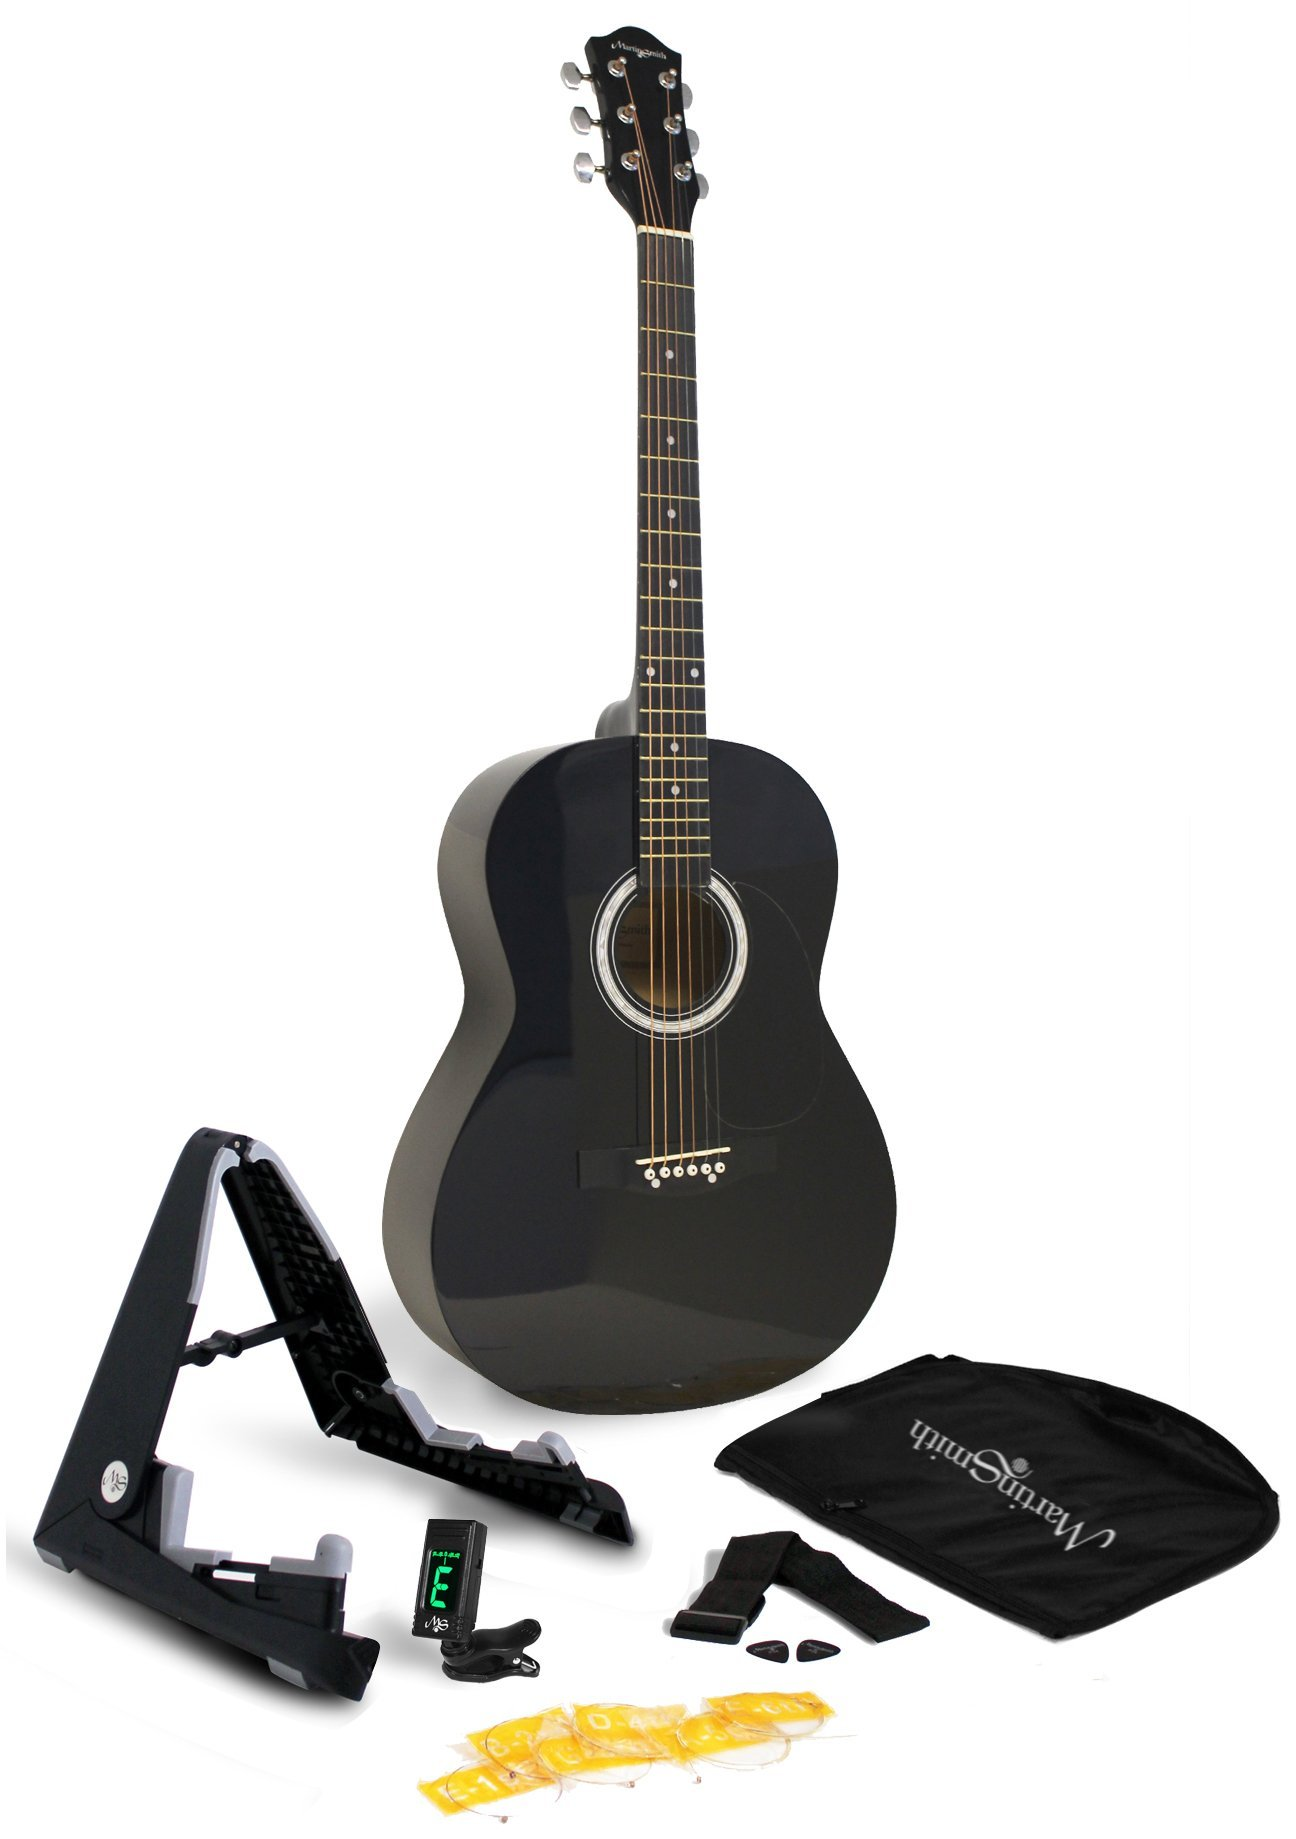 Martin Smith 6 Acoustic SuperKit Stand, Tuner, Bag, Strap, Picks, and Guitar Strings, Black (W-101-BK-PK) by Martin Smith